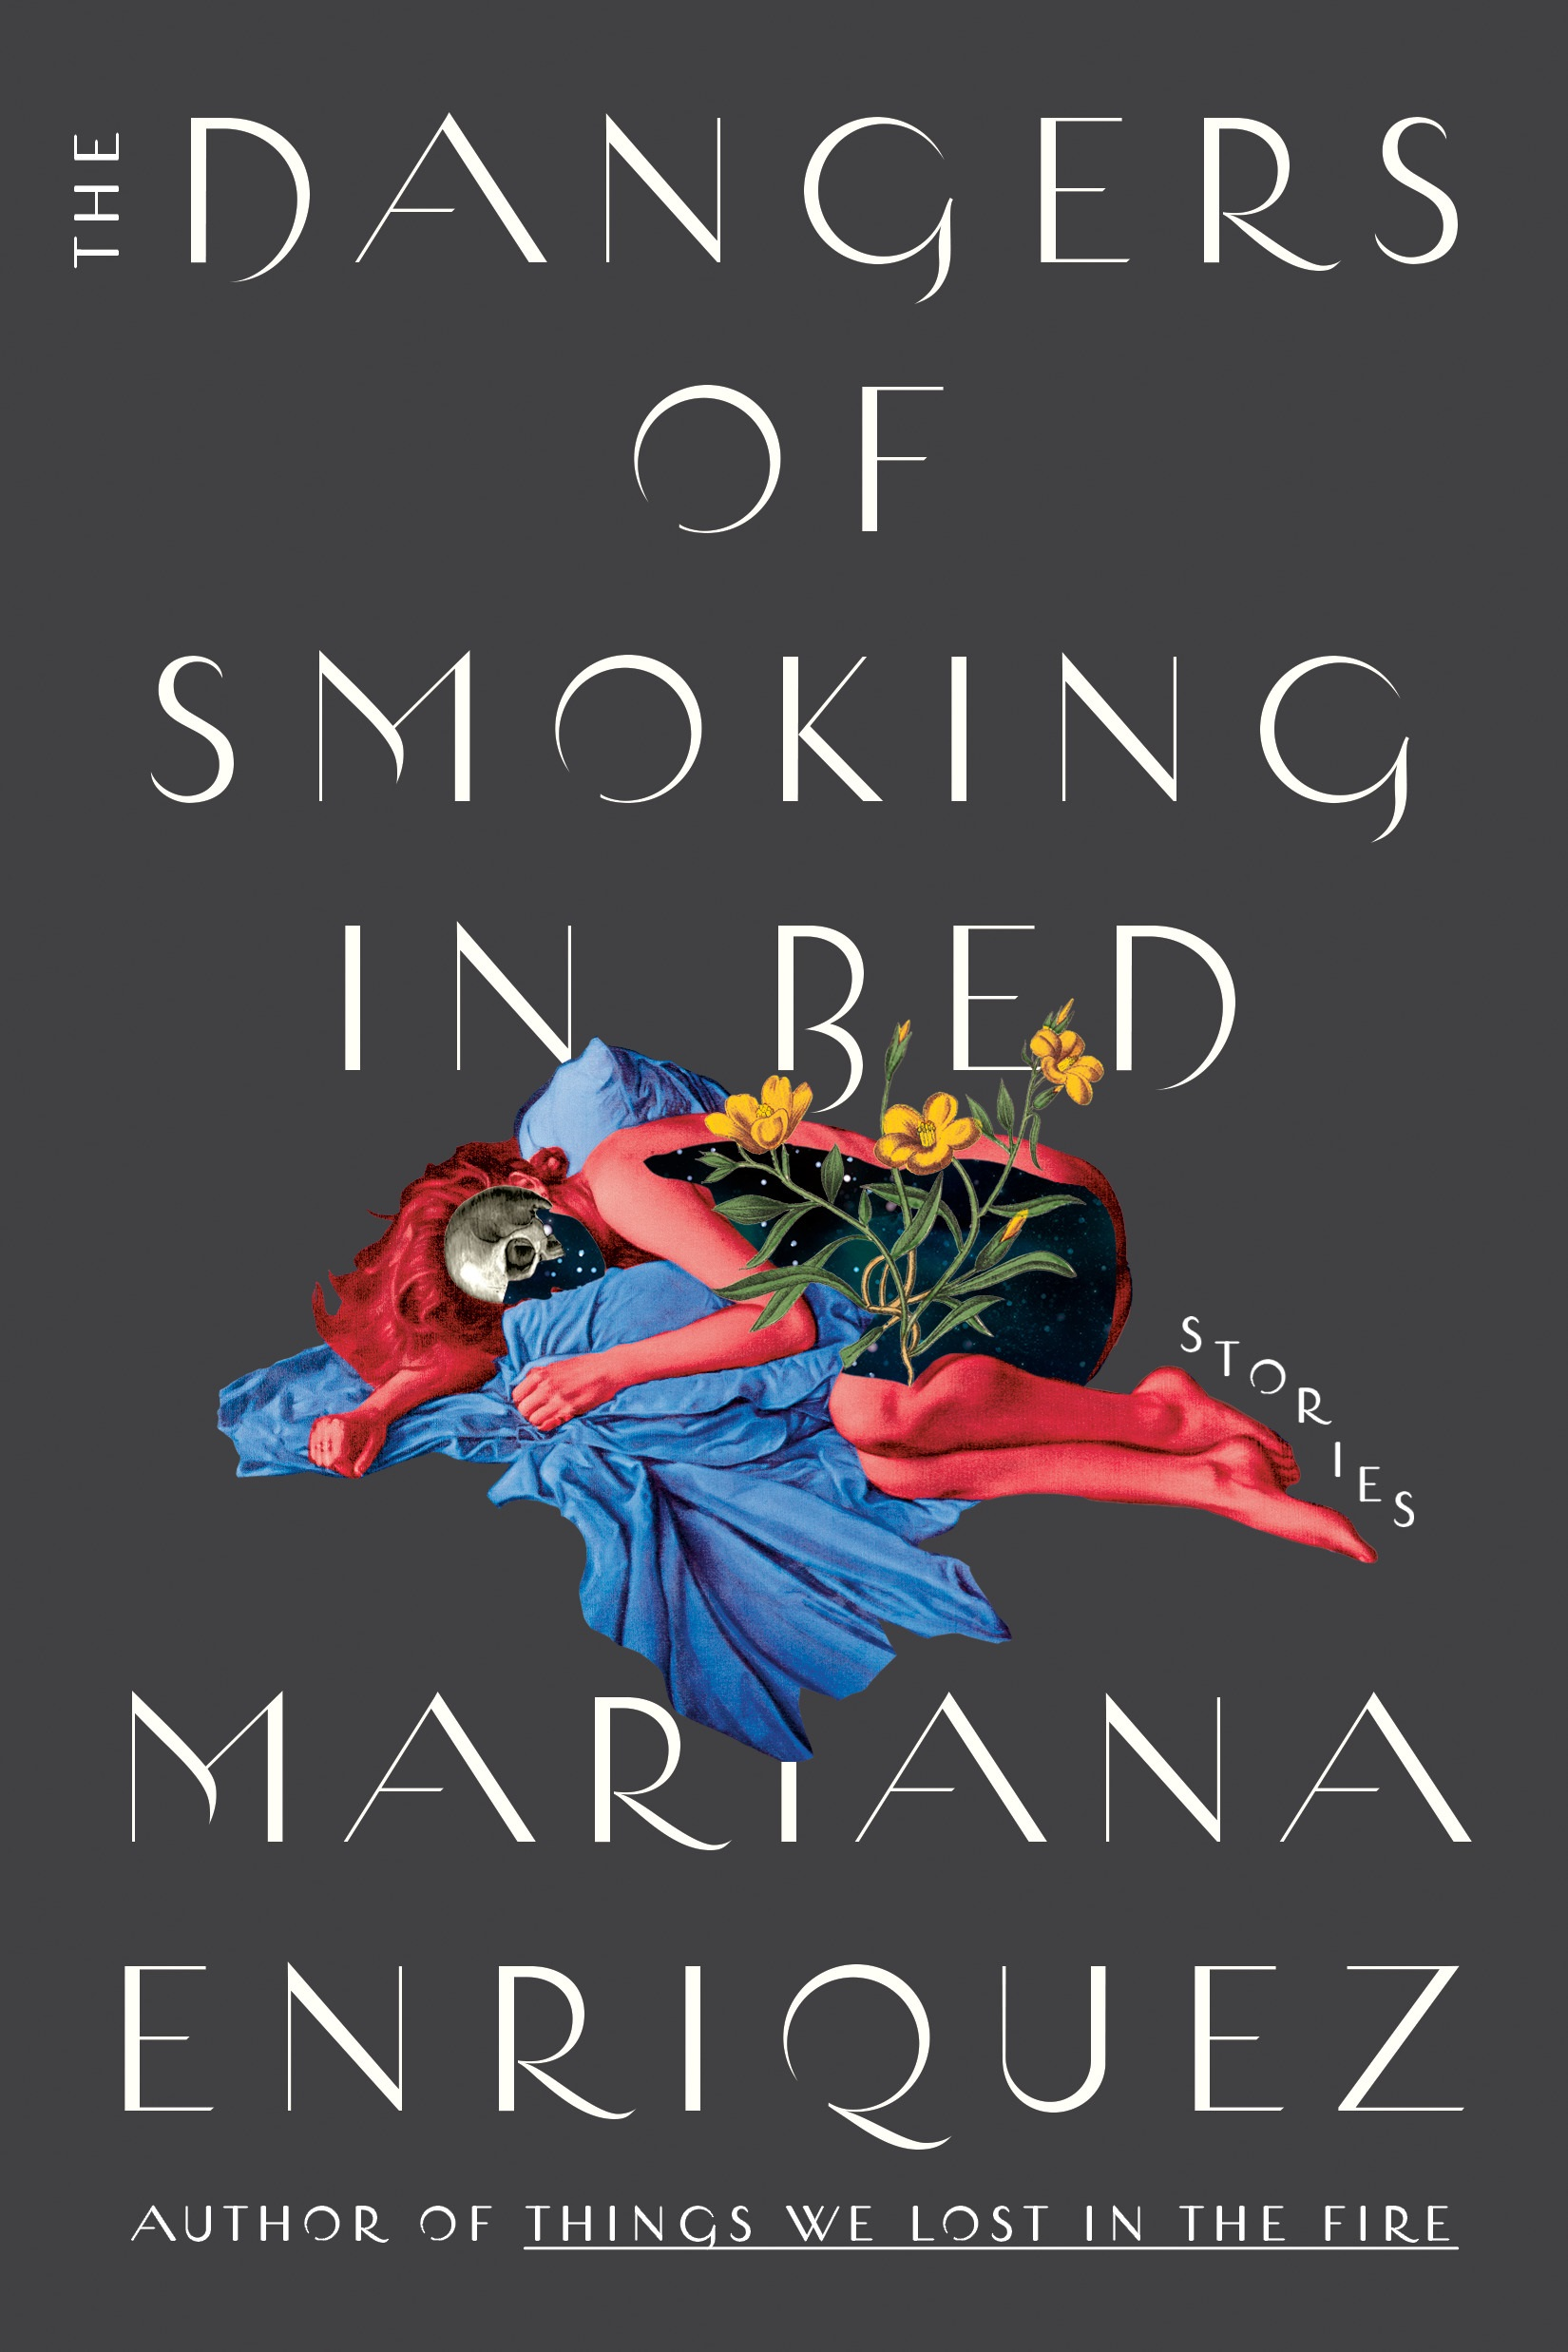 The Dangers of Smoking in Bed: Stories by Mariana Enriquez